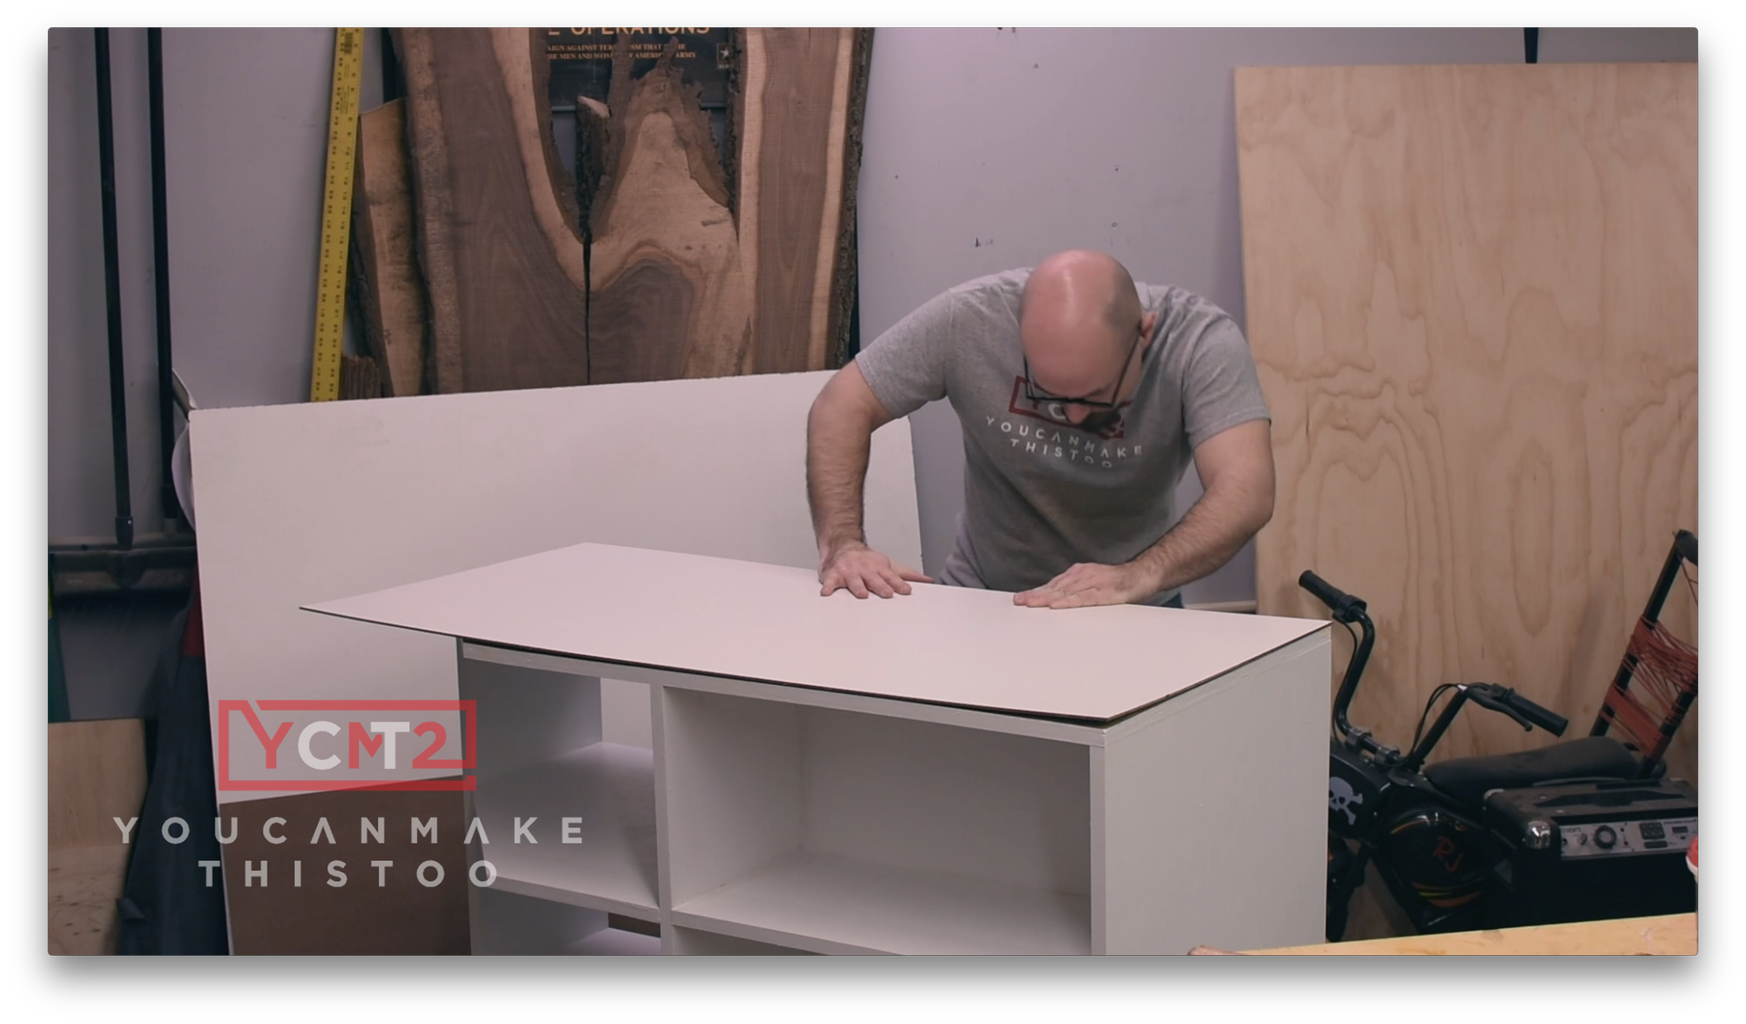 Laminate the Melamine to the Top